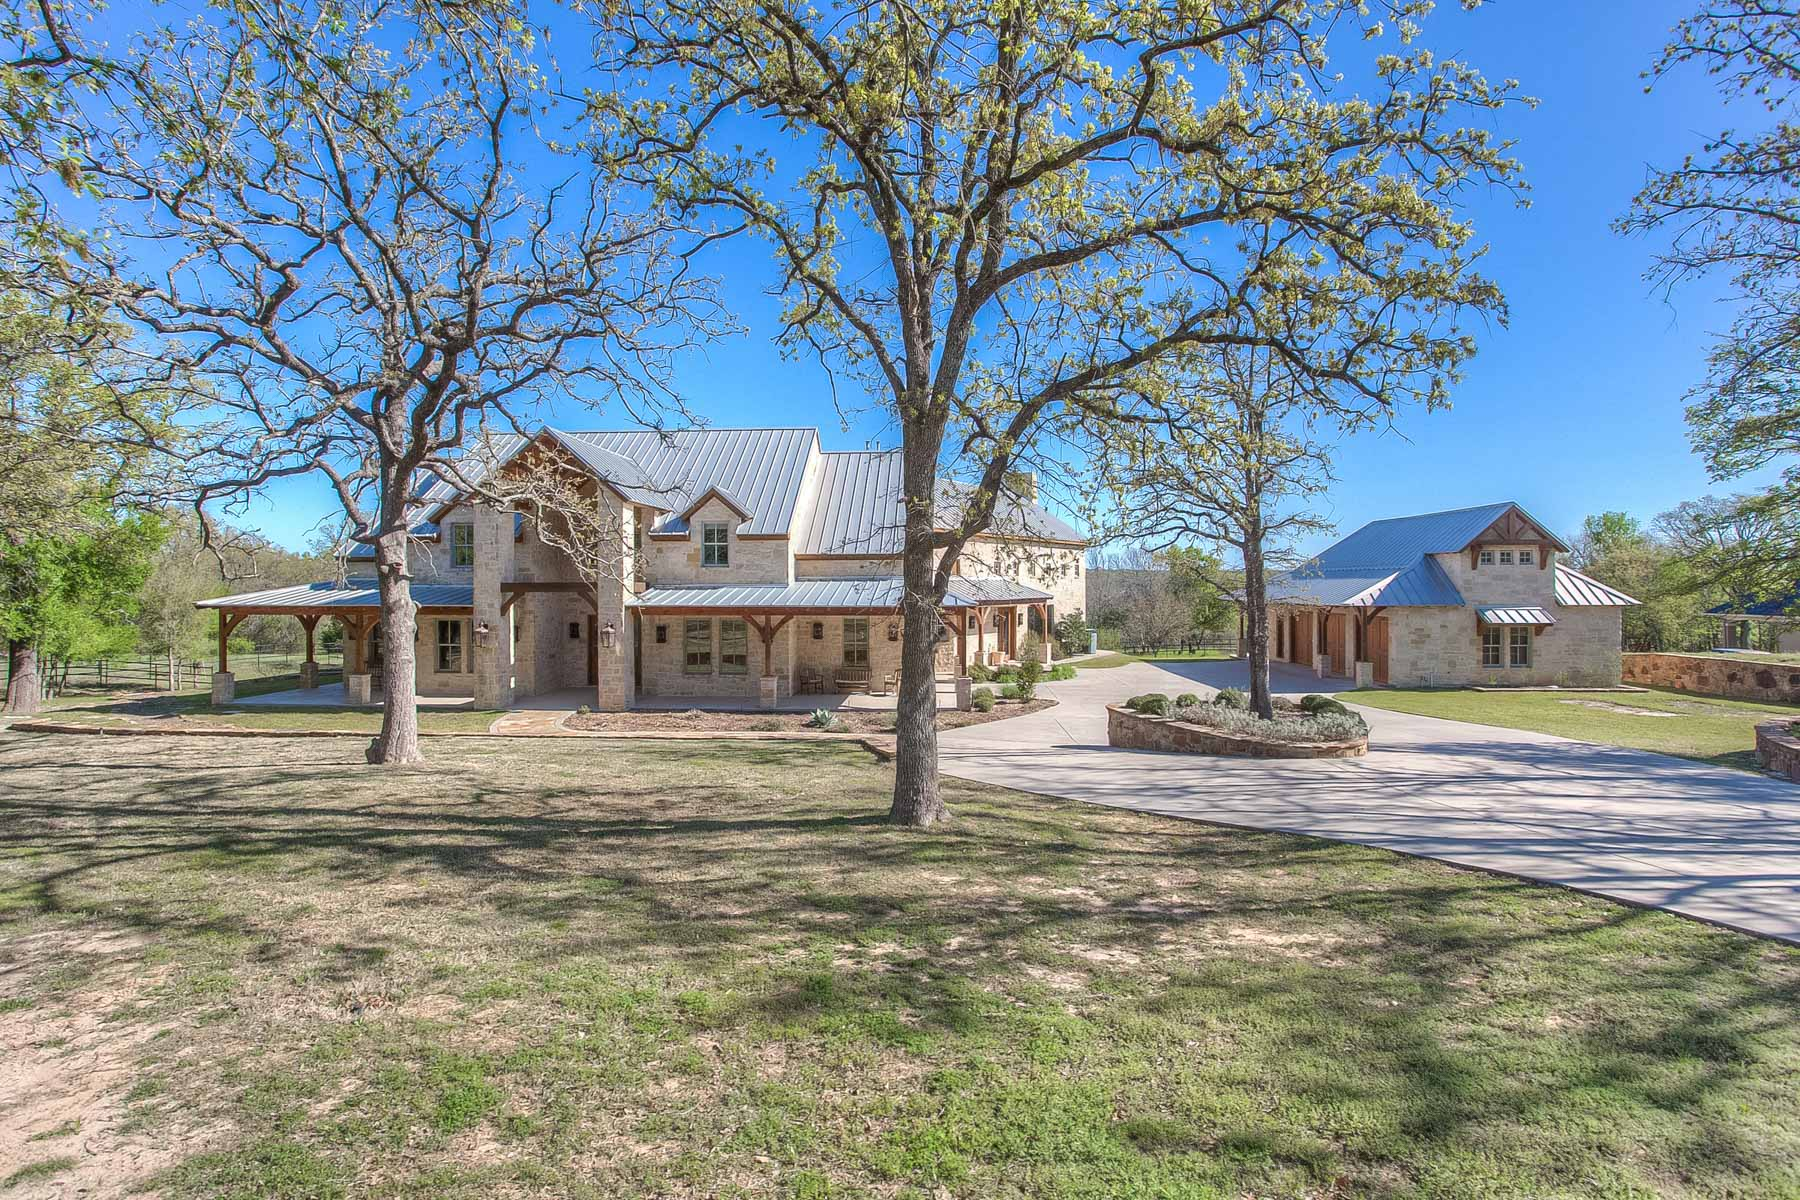 Single Family Home for Sale at Southwestern in Rollins Hills Estate 133 E. Bozeman Lane Fort Worth, Texas, 76108 United States